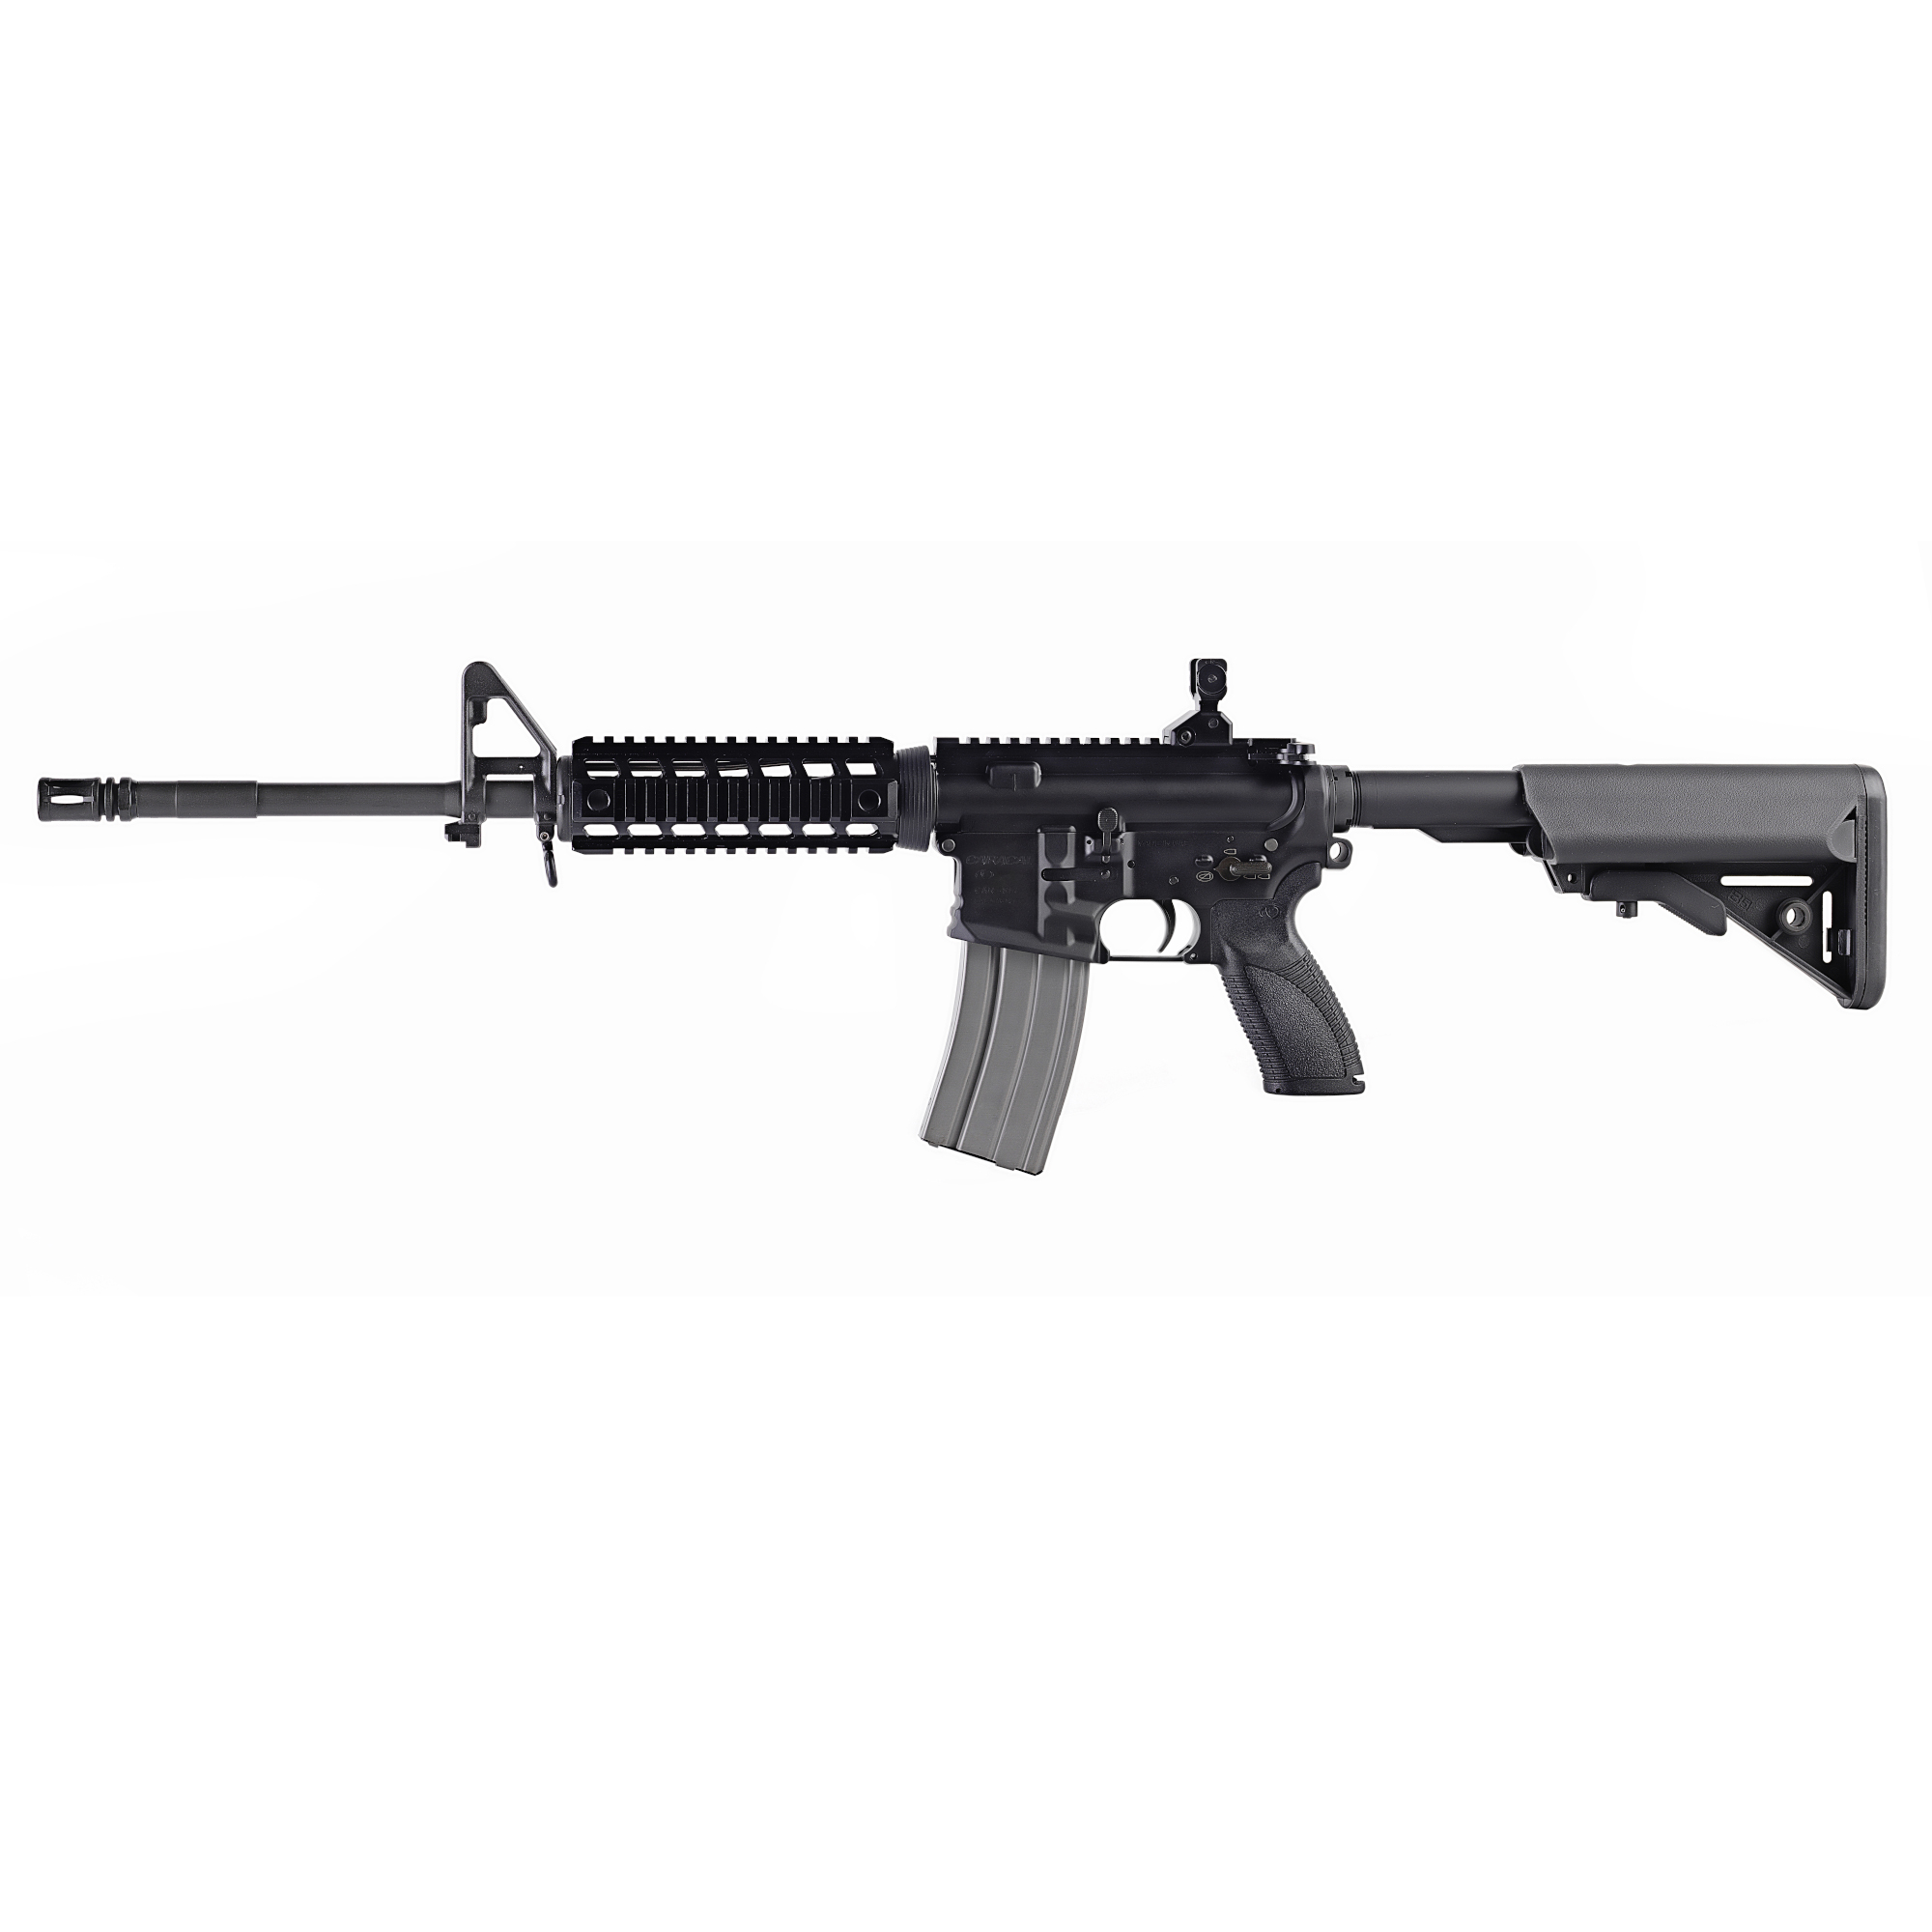 Carbine 14.5 Assault Rifle